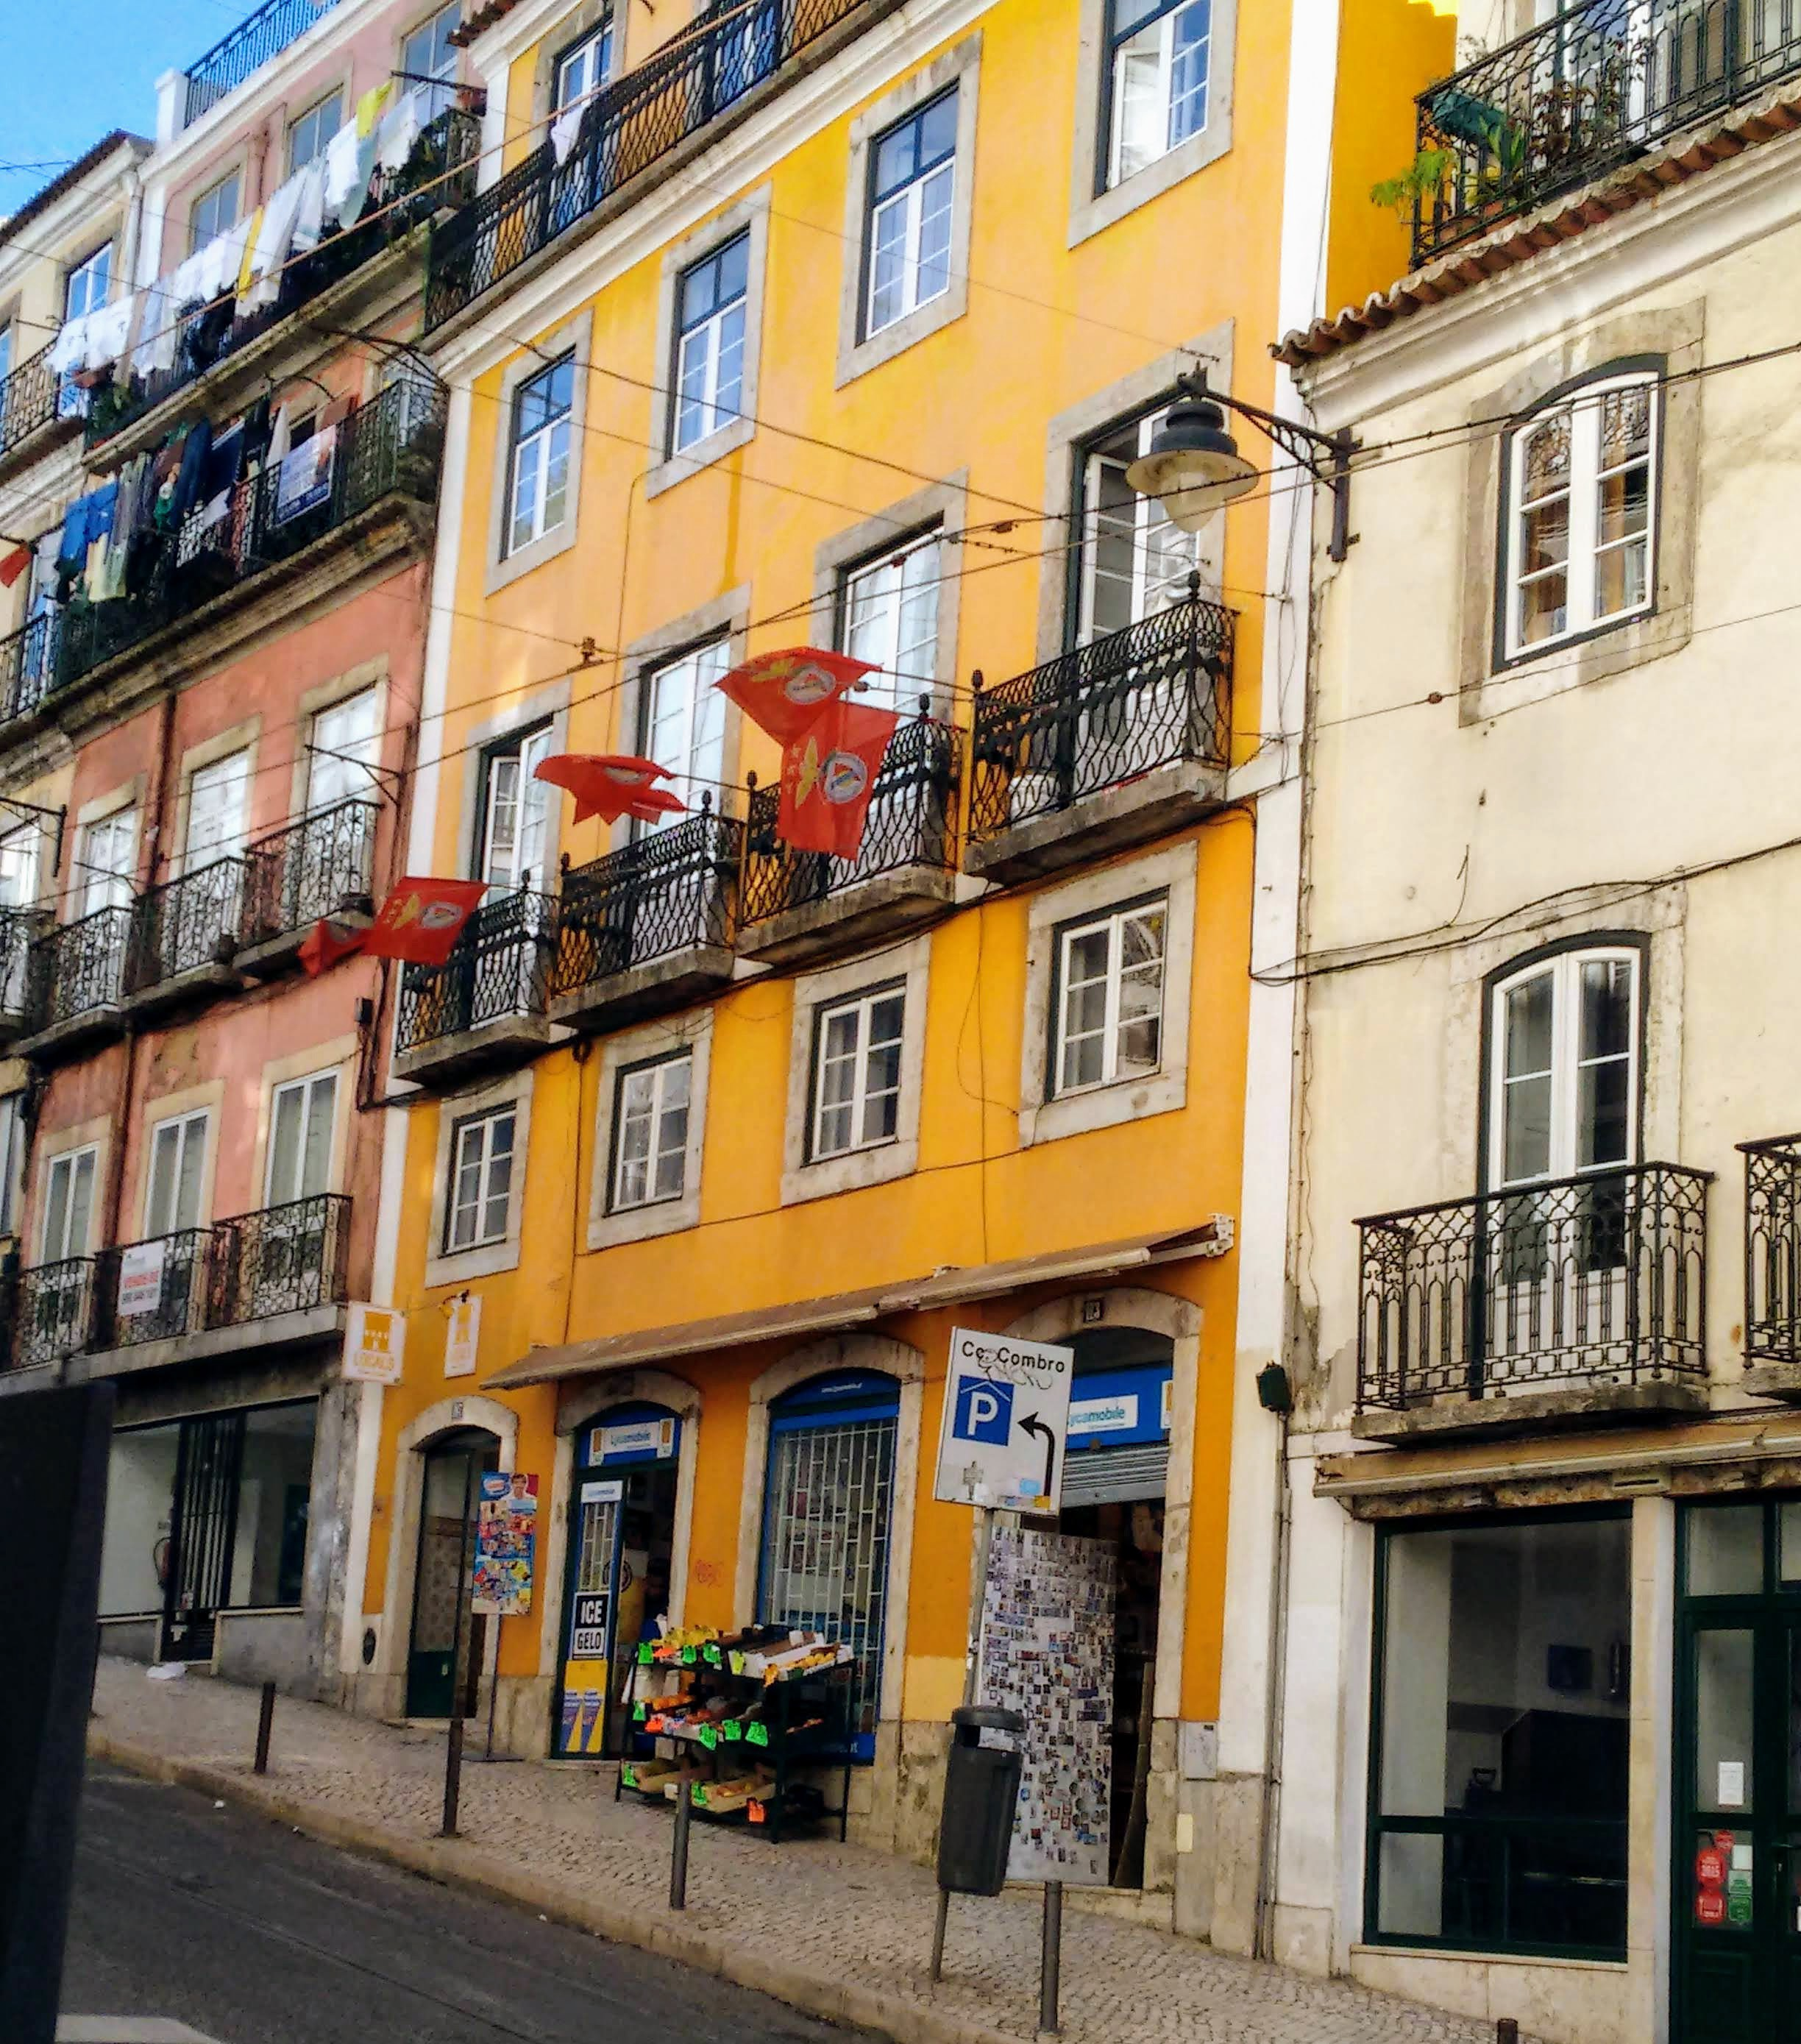 Facade of buildings in the Alfama neighborhood.